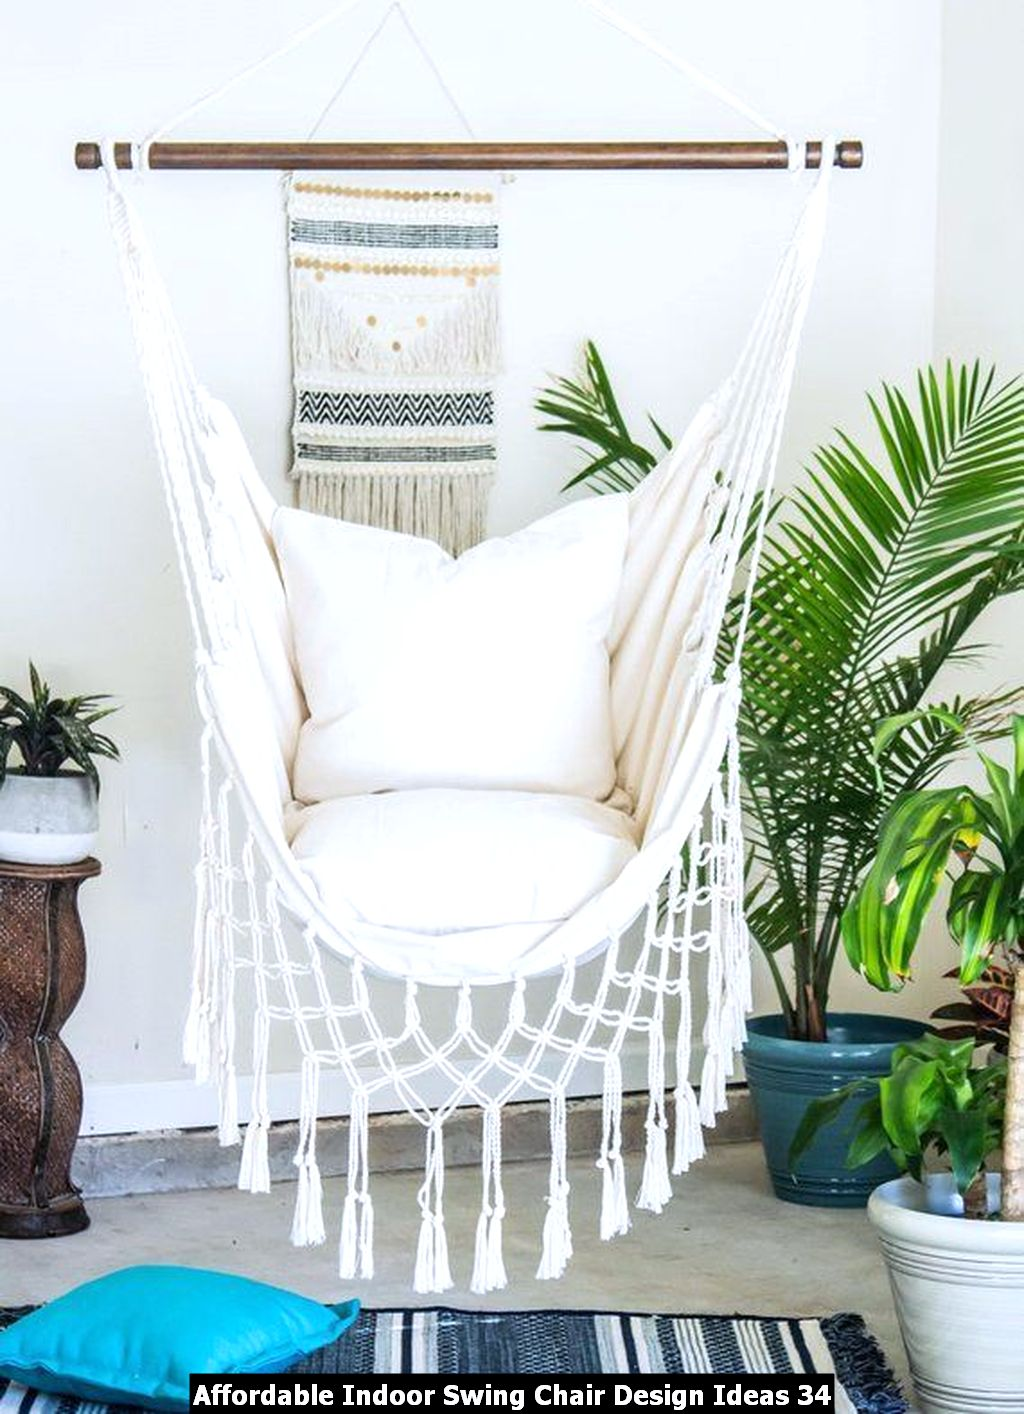 Affordable Indoor Swing Chair Design Ideas 34